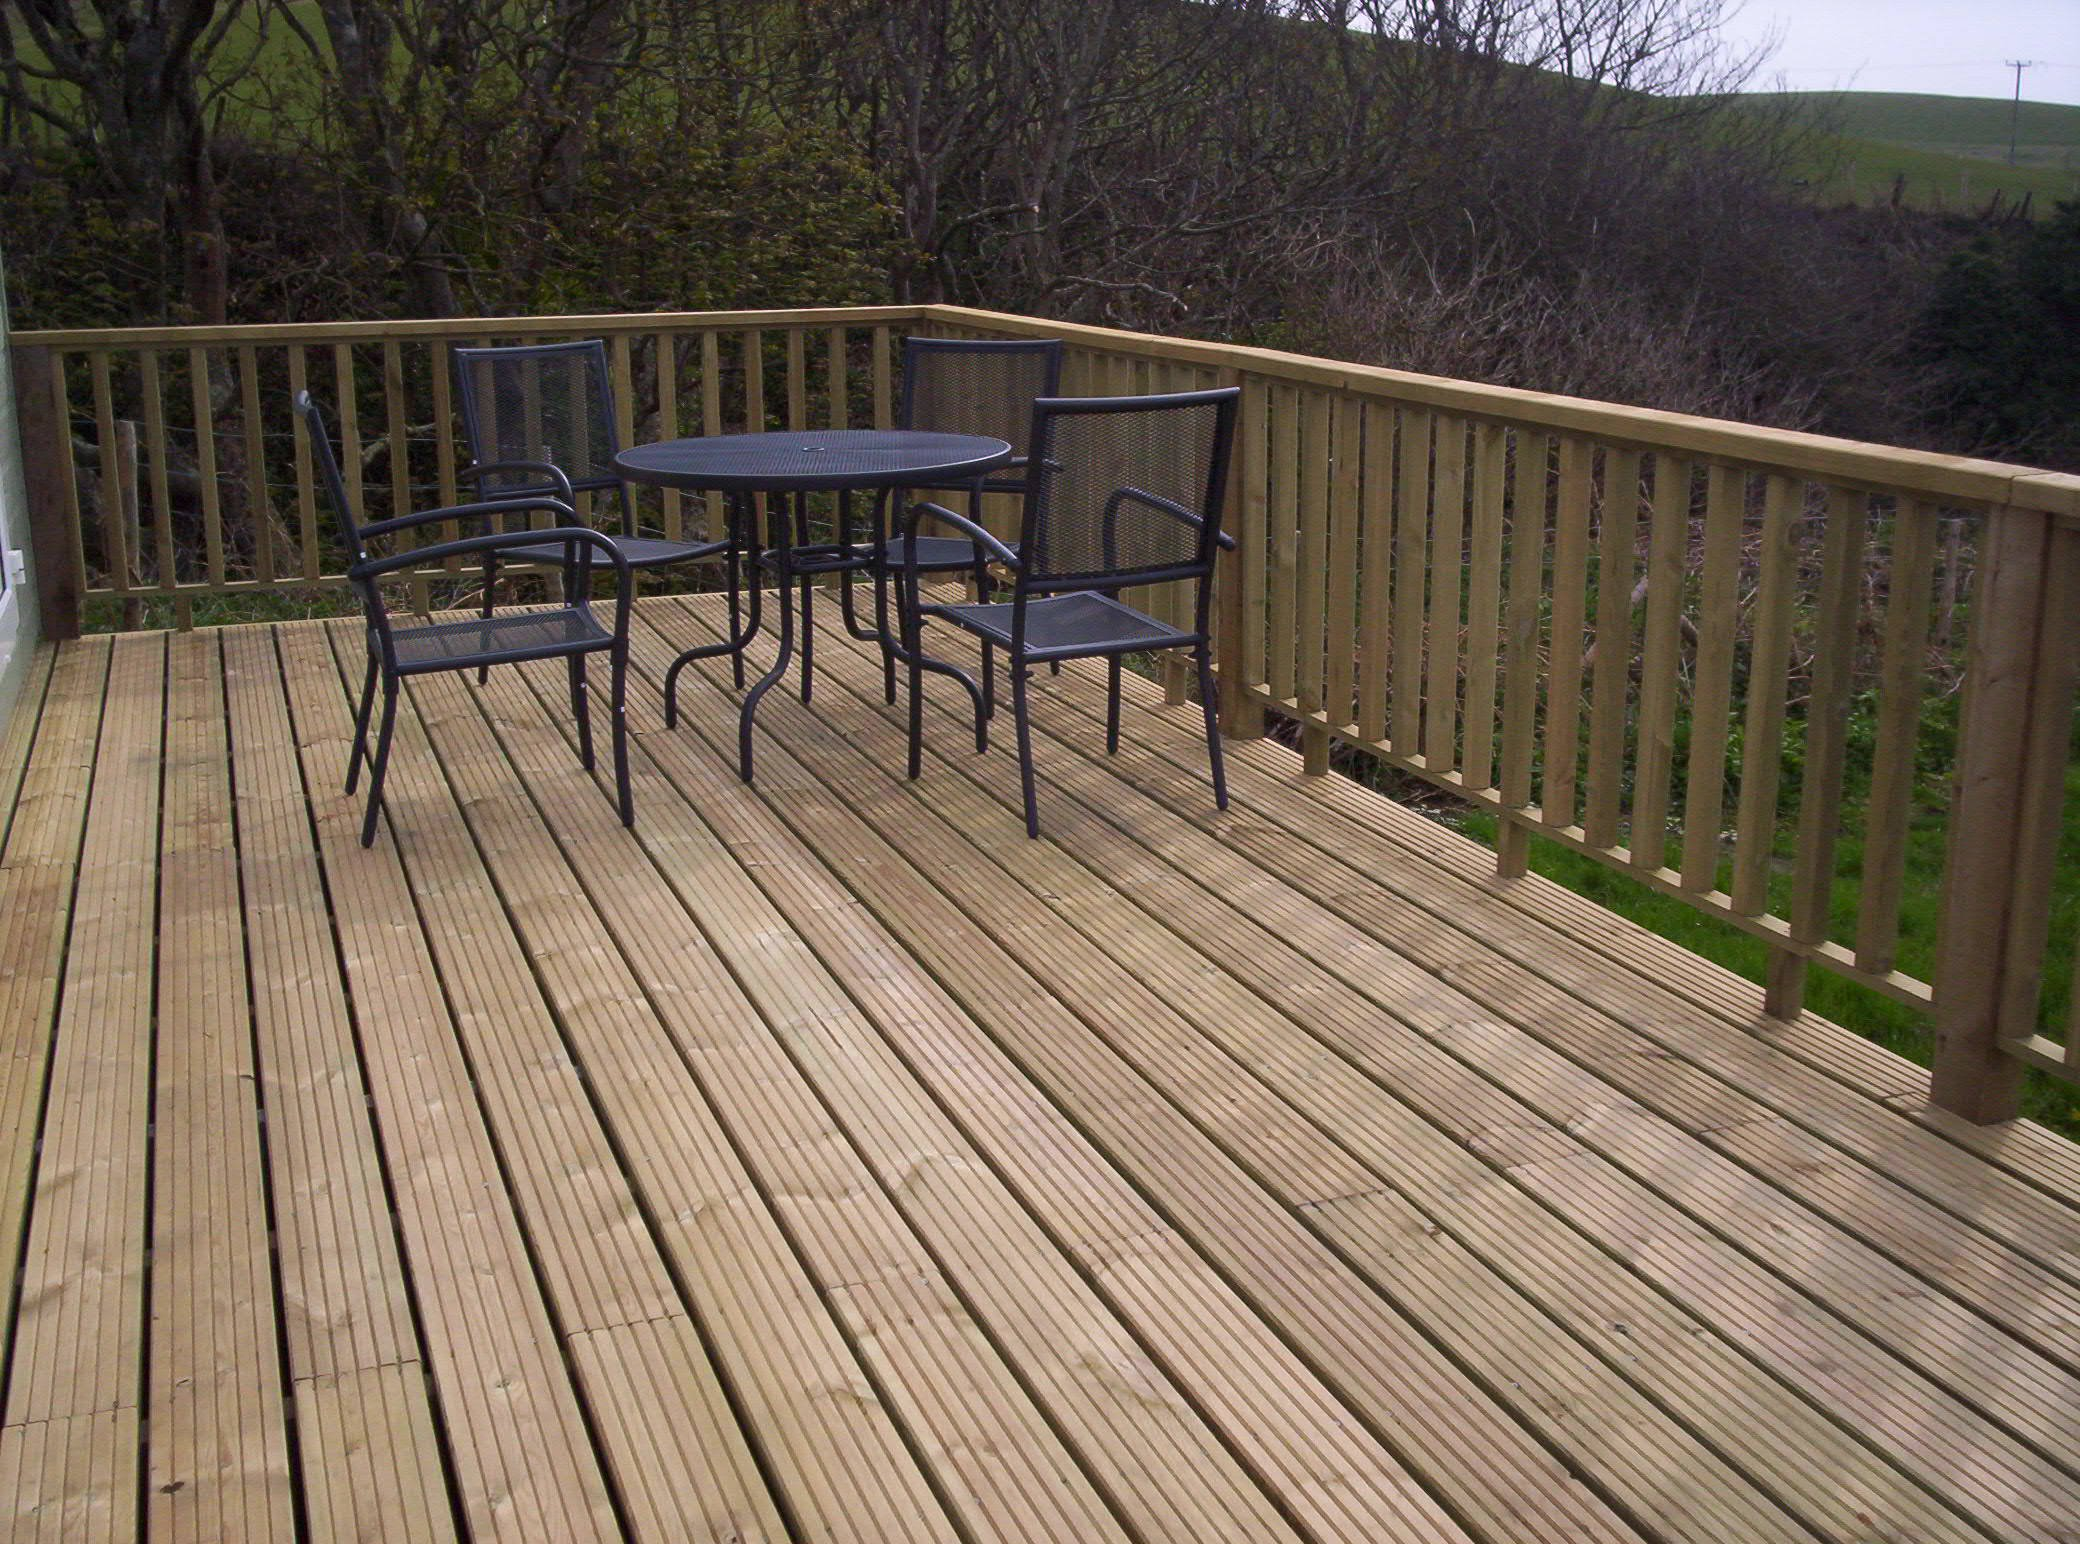 Decking merchant in liverpool for 6 inch wide decking boards